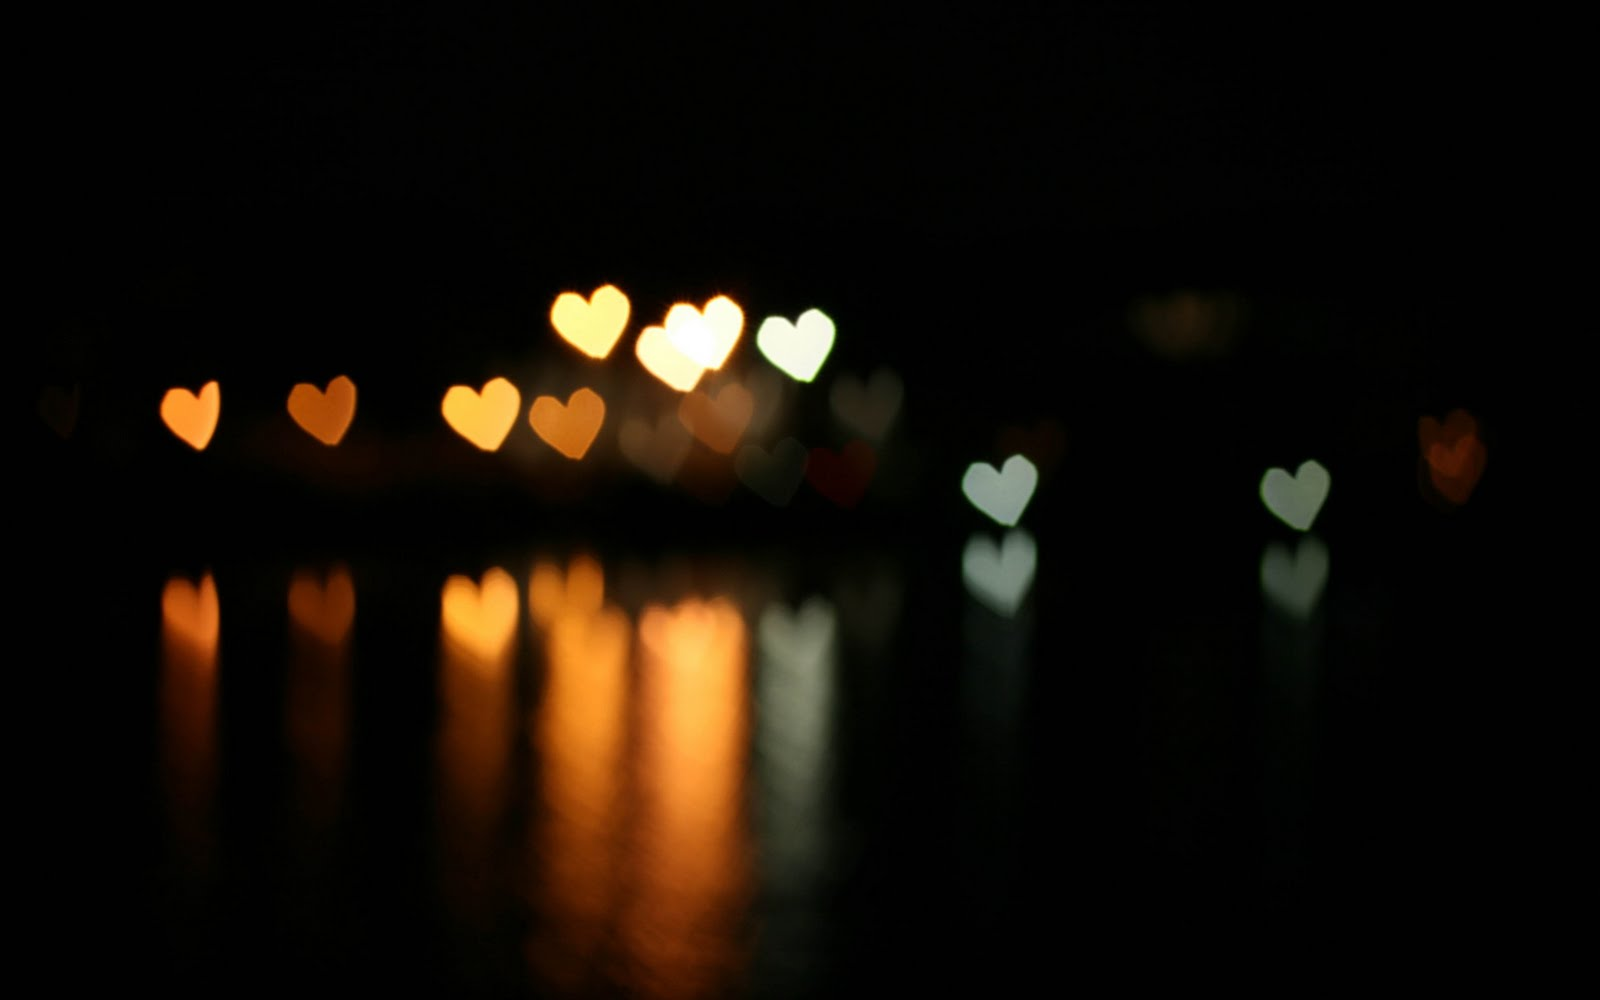 effect bokeh hearts dark background the reflection hd love